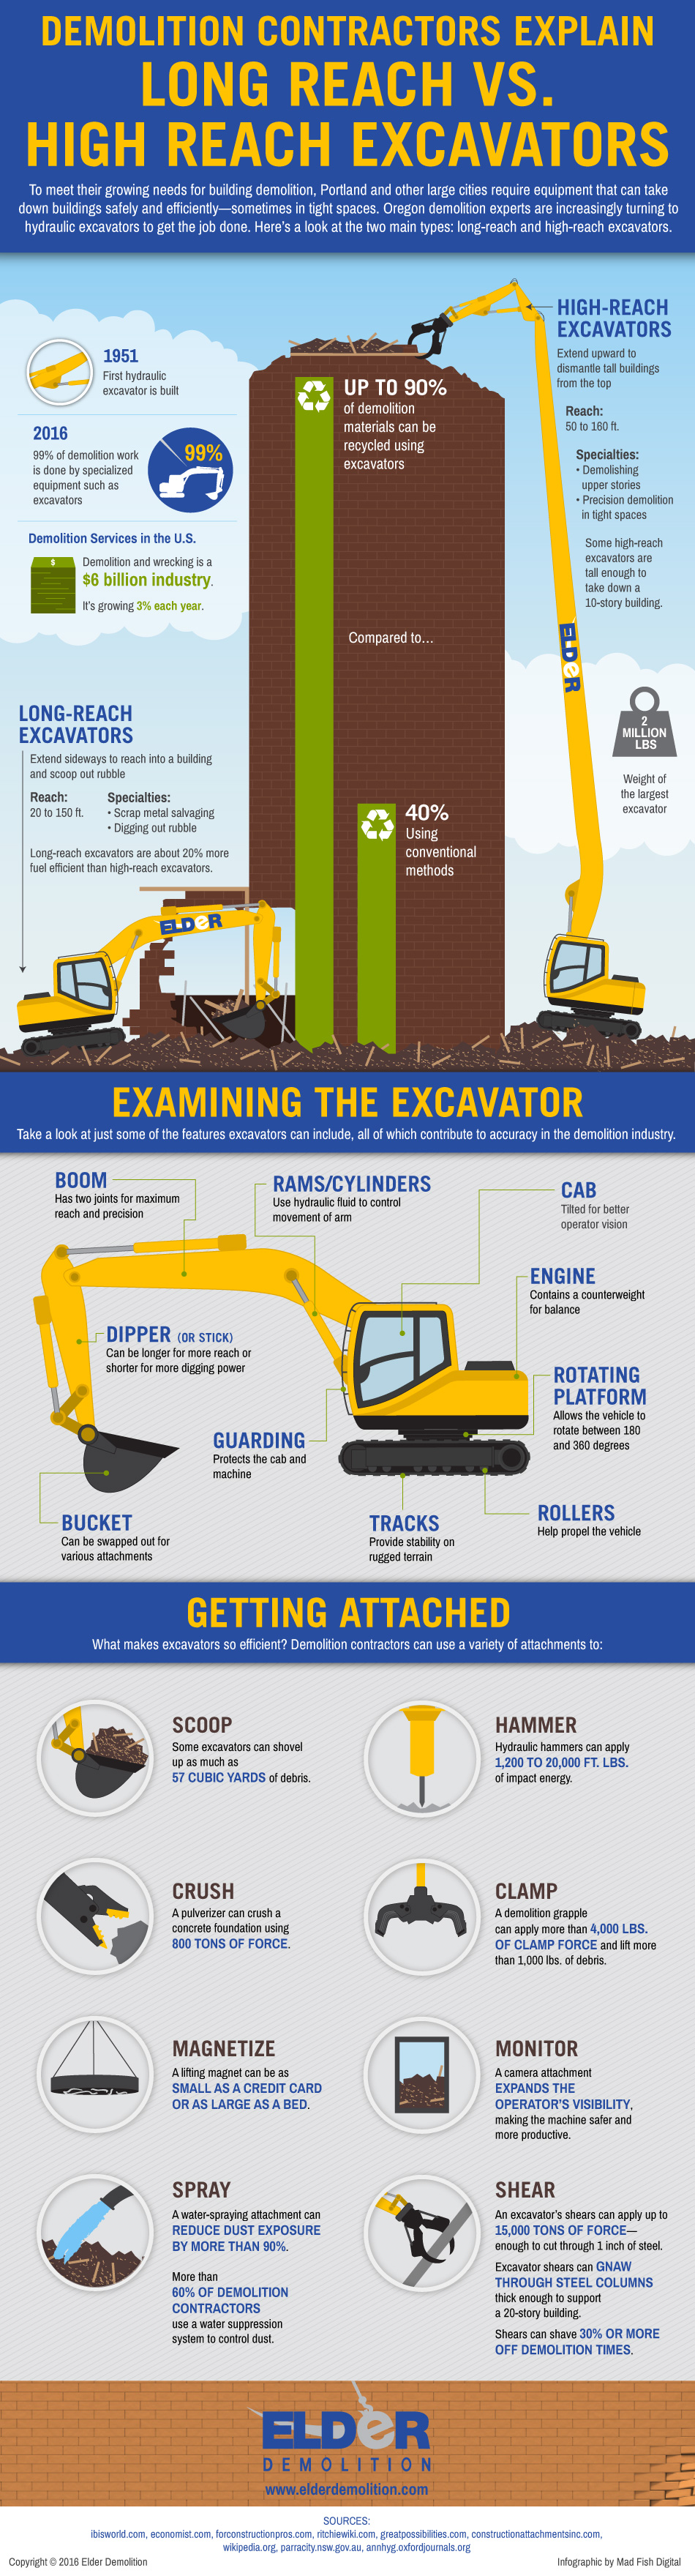 OregonDemolitionExcavators-1